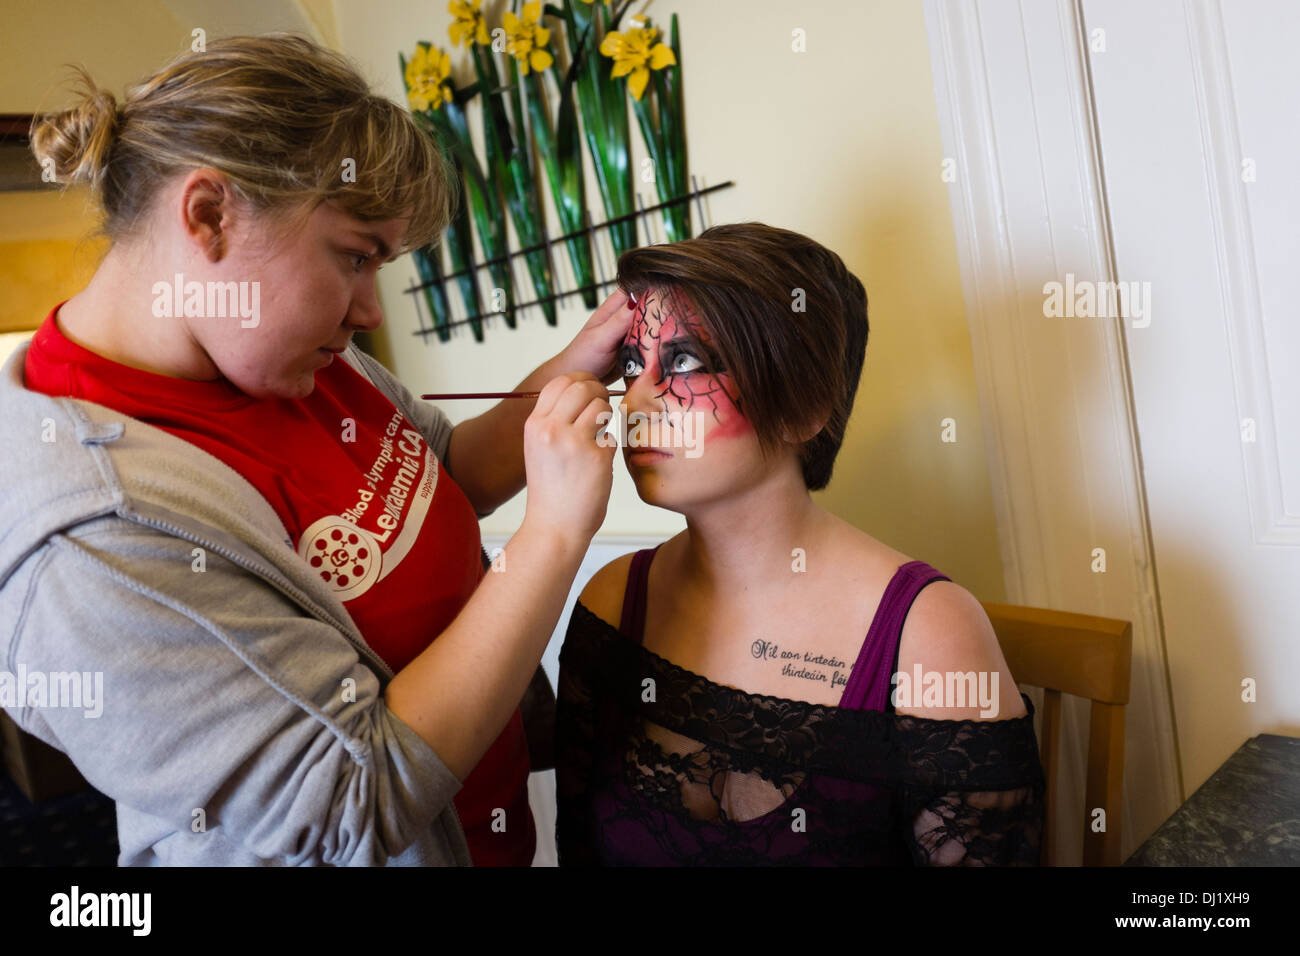 A woman applying makeup to a model's face backstage at a charity fashion show in aid of Leukaemia Care. UK - Stock Image